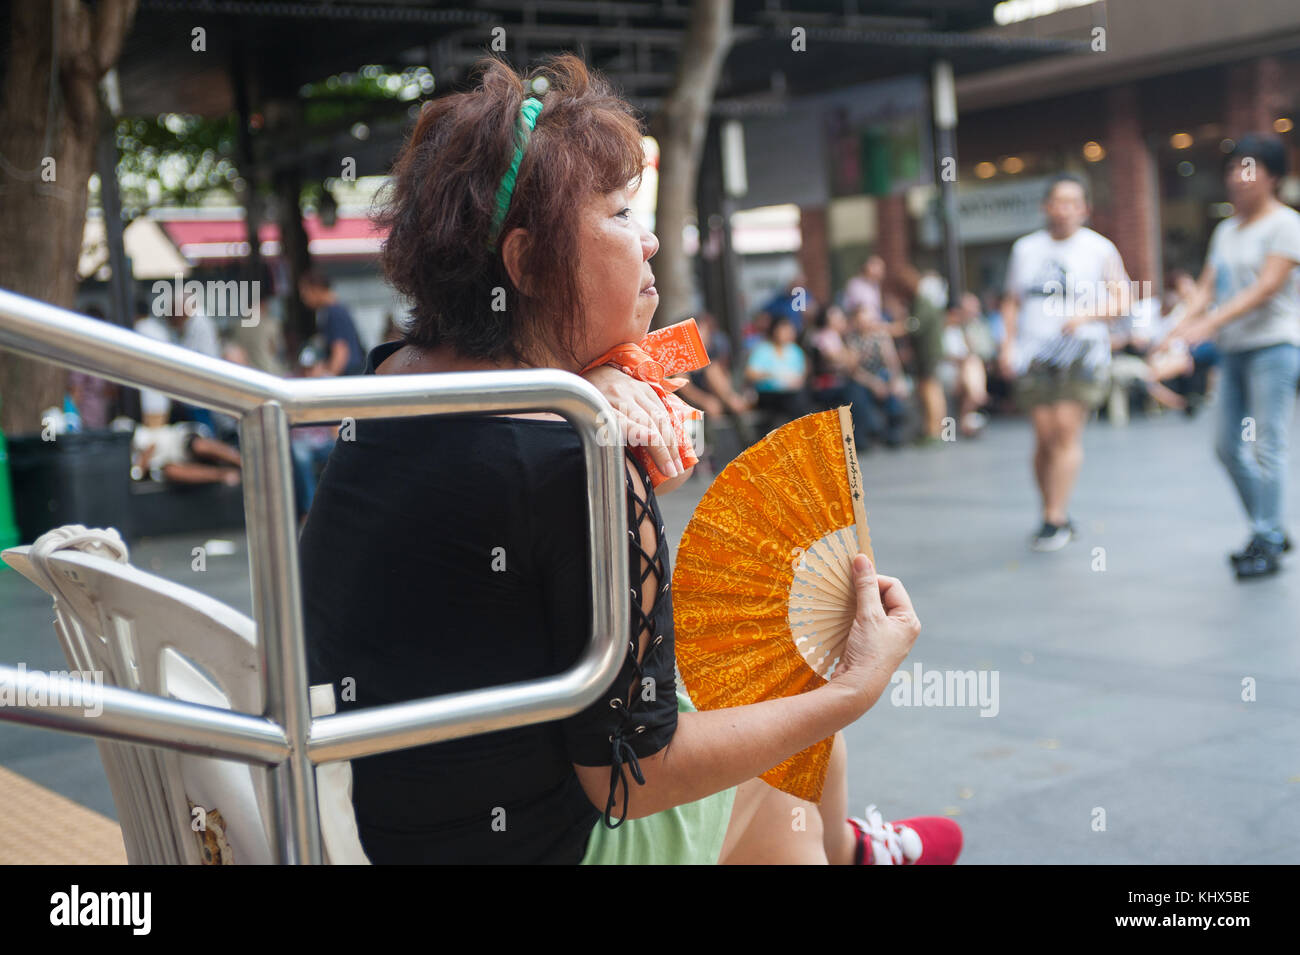 22.10.2017, Singapore, Republic of Singapore, Asia - A woman is seen fanning herself with a fan as she watches a - Stock Image